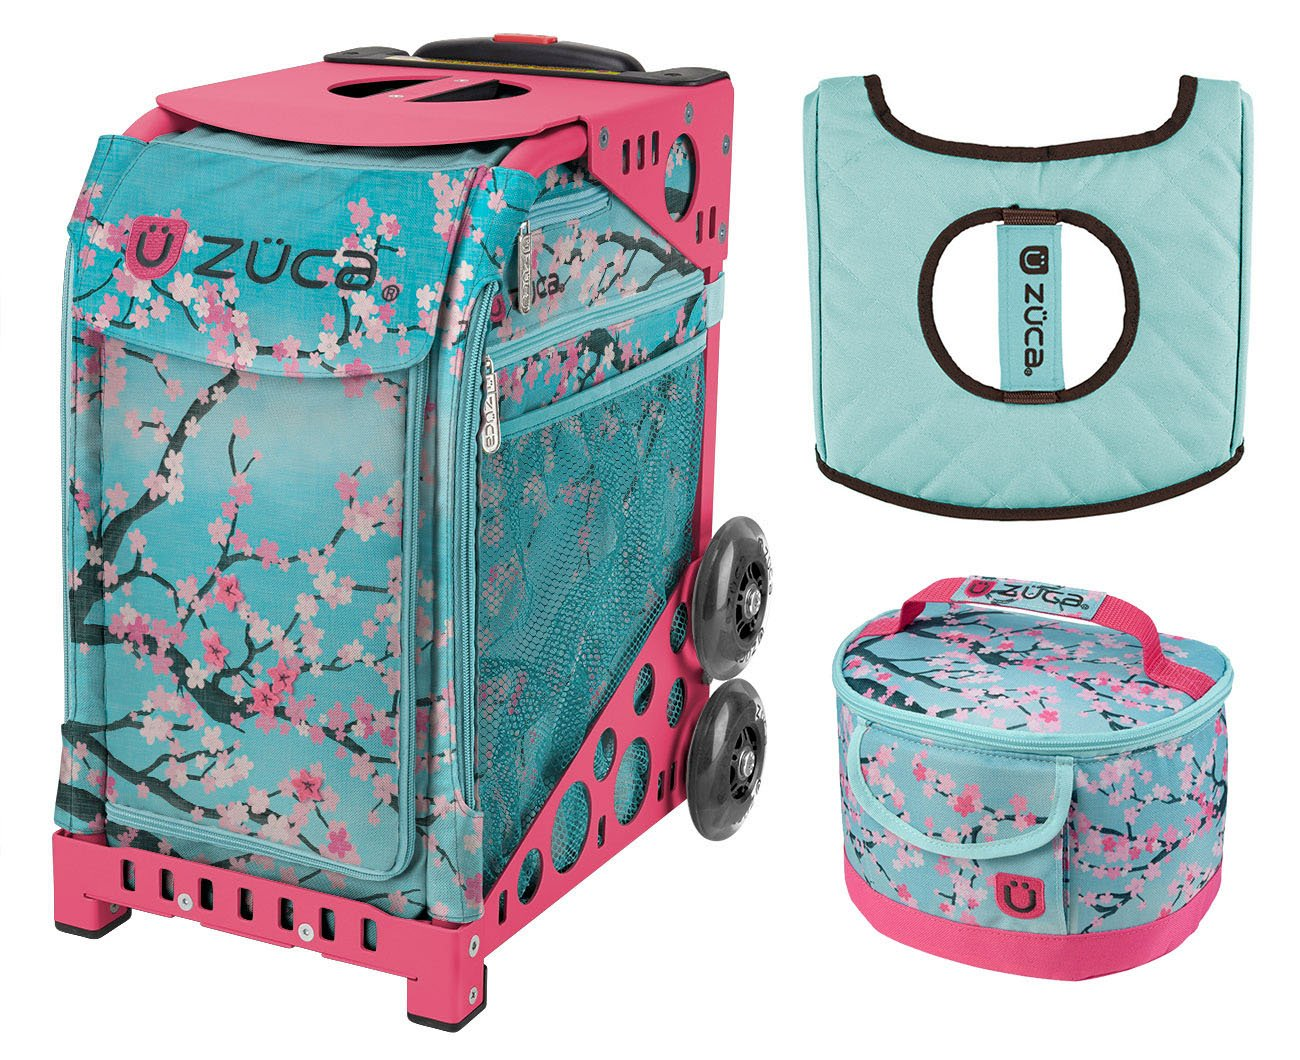 ZUCA Sport Bag - Hanami with Gift Lunchbox and Seat Cover